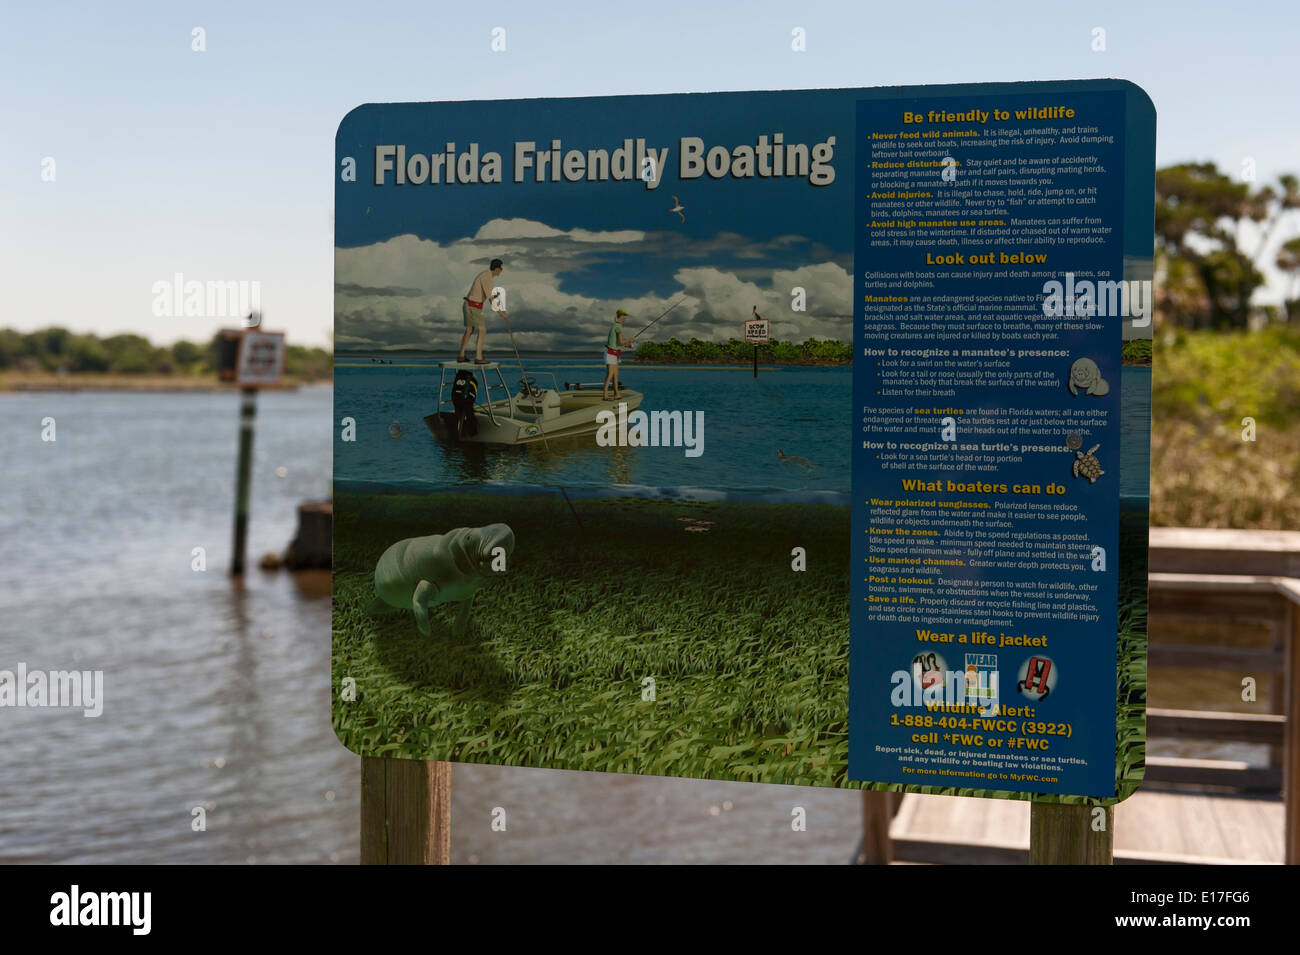 Fwc Stock Photos & Fwc Stock Images - Alamy